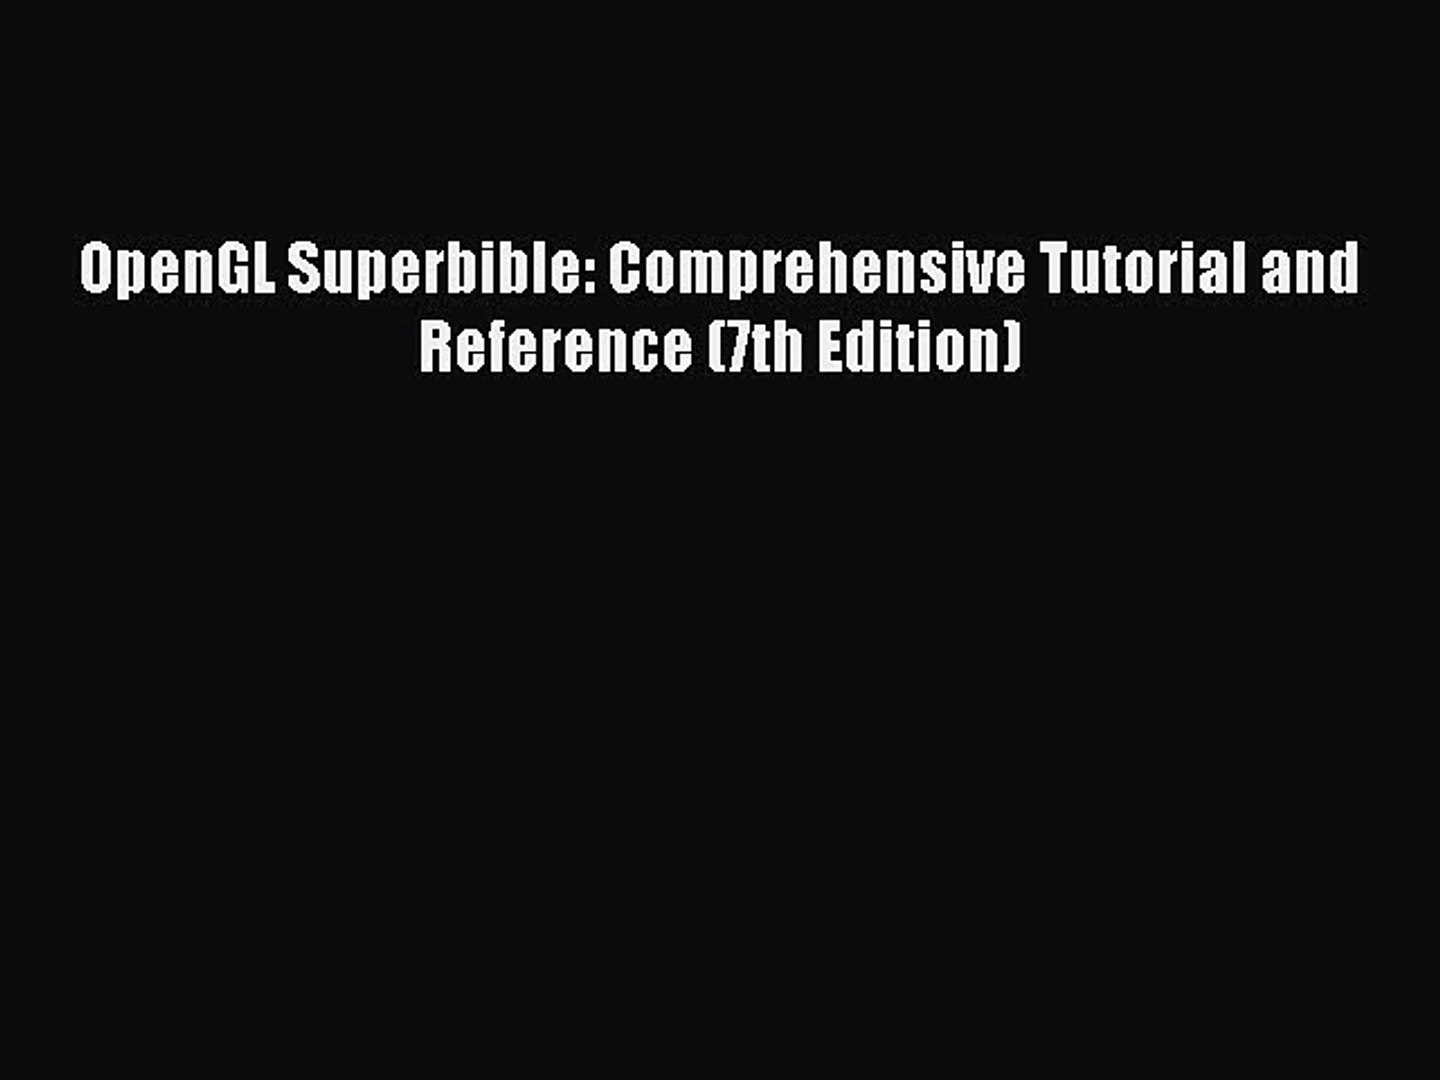 Comprehensive Tutorial and Reference 6th Edition OpenGL SuperBible